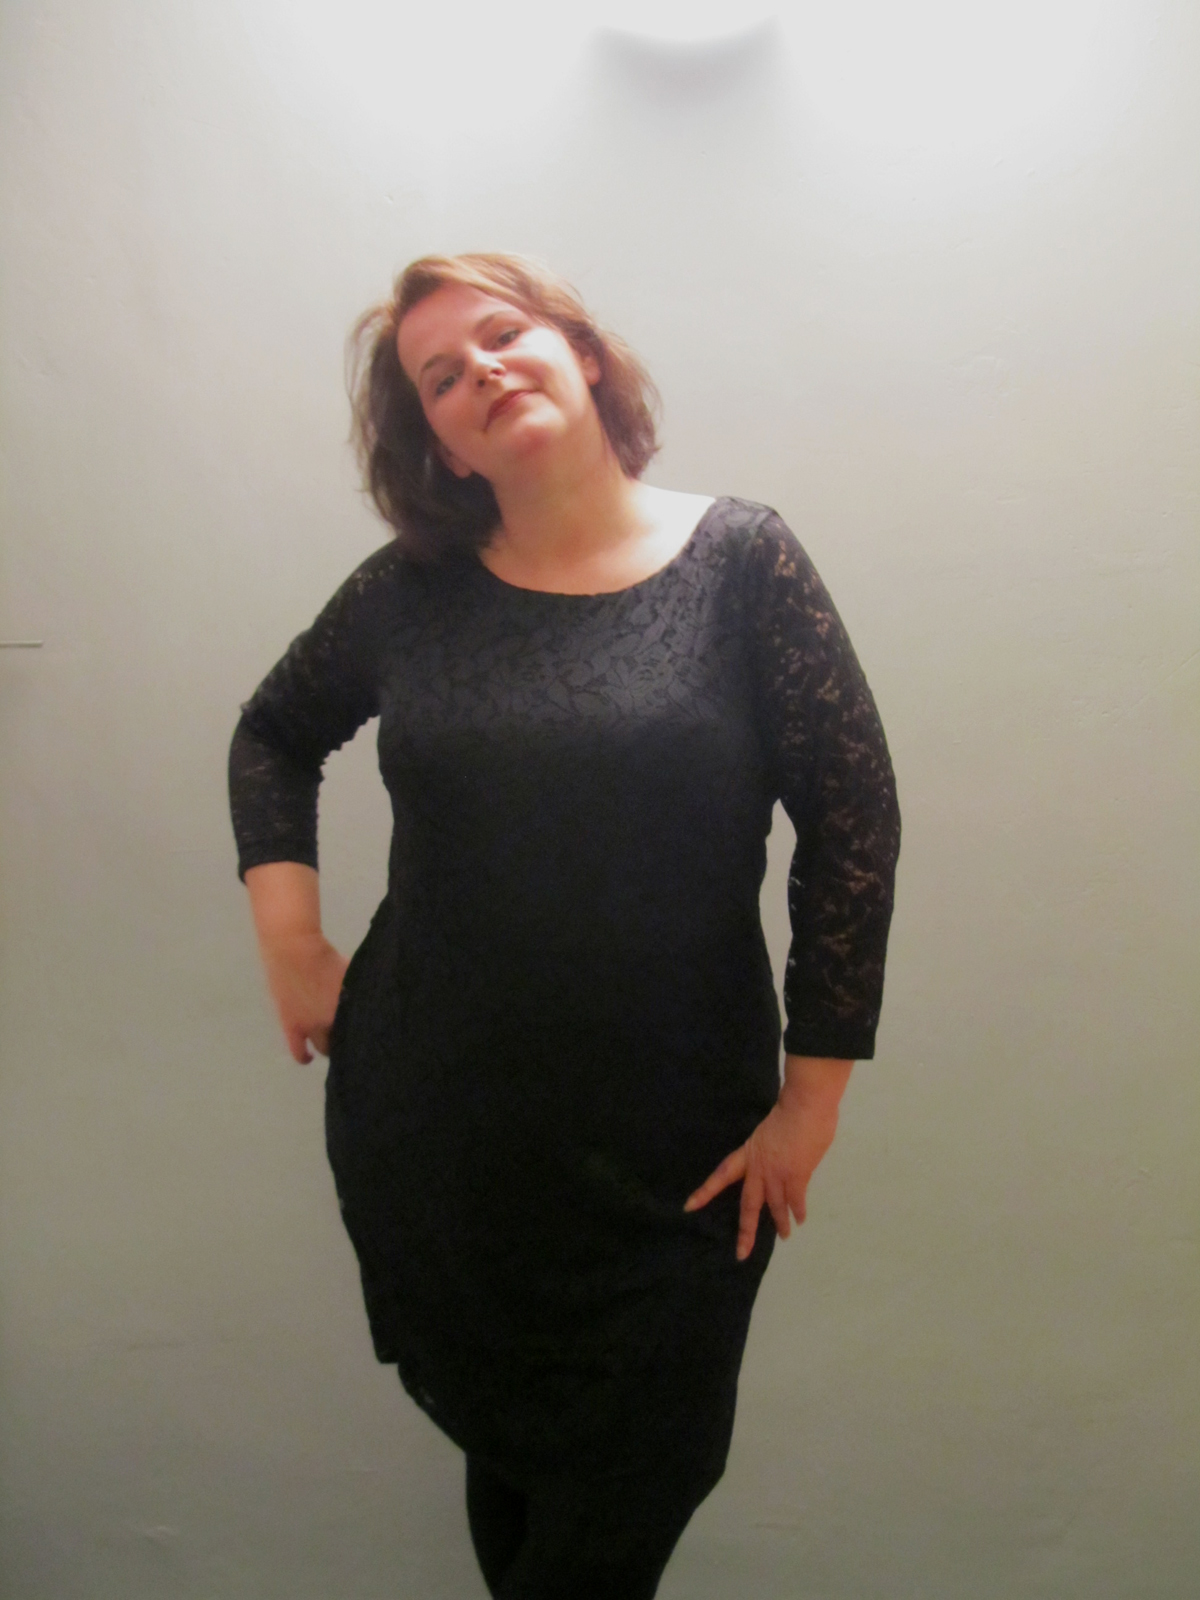 Spitzenkleid H&M Silvester Outfit